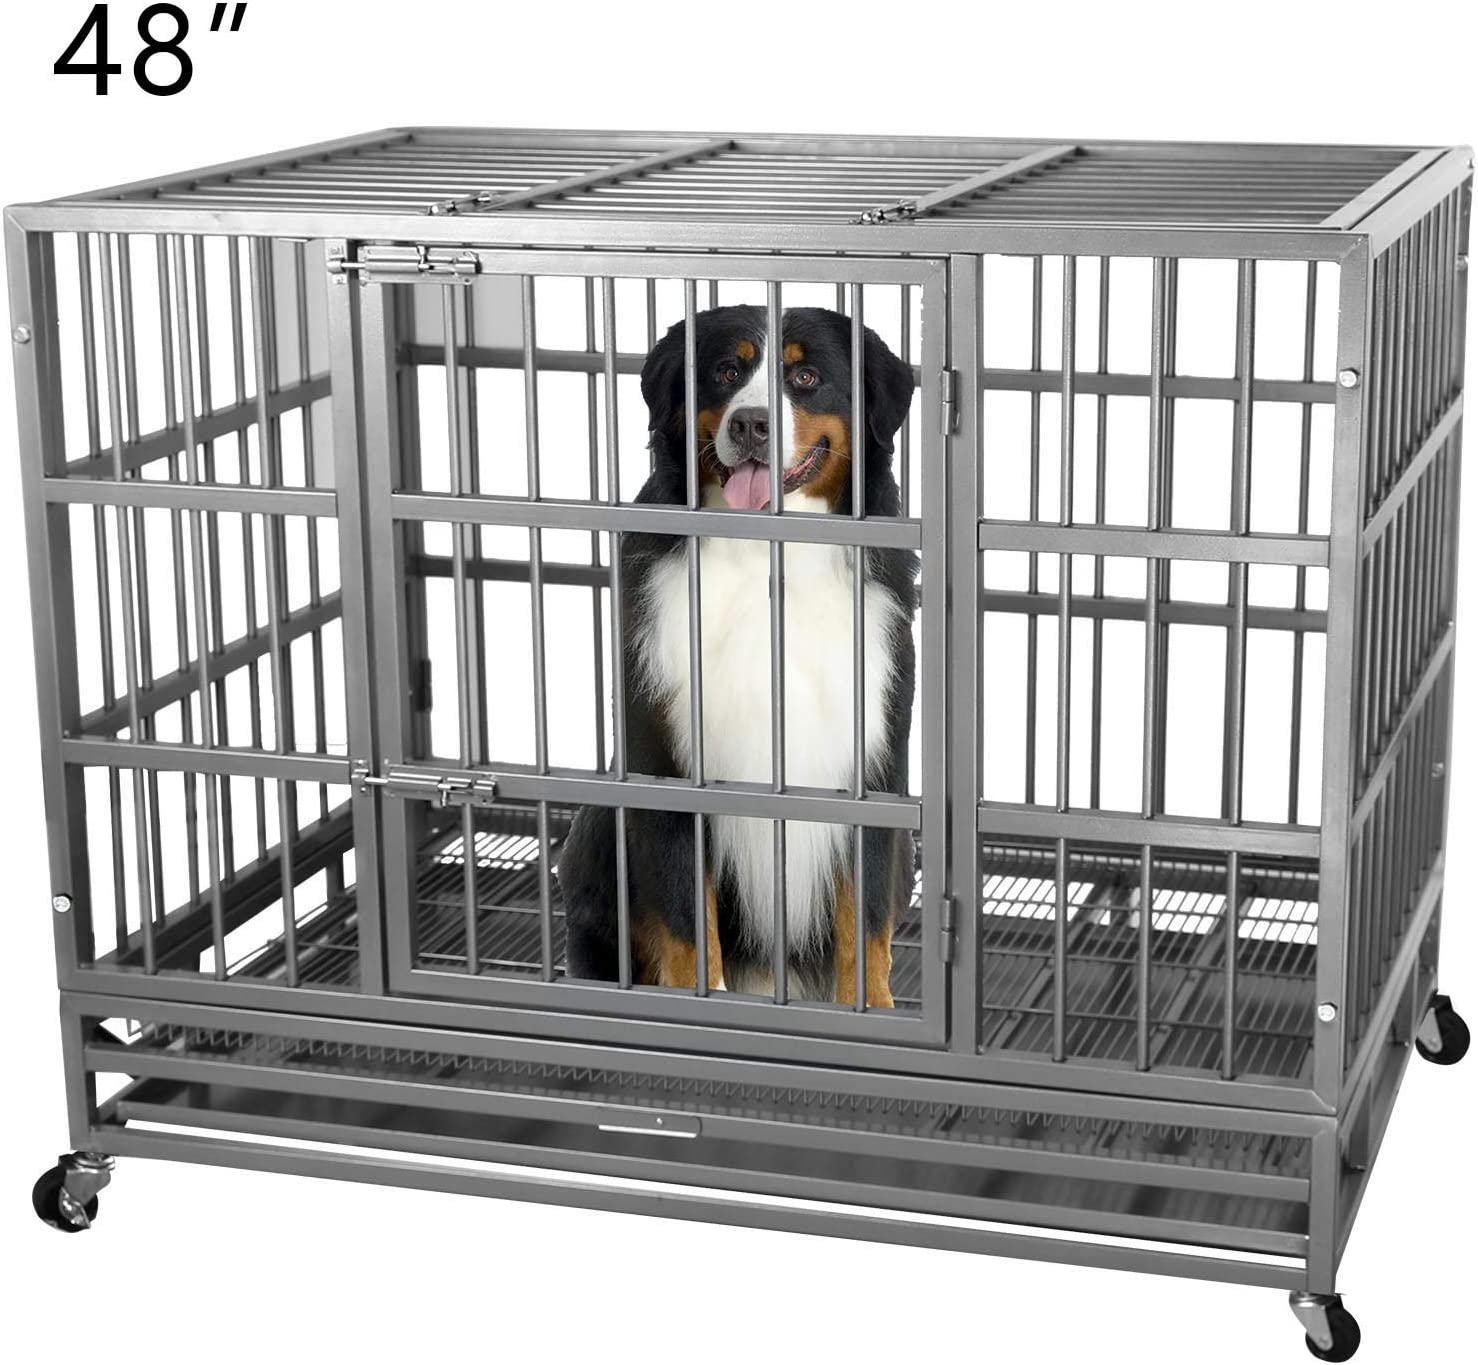 ITORI Heavy Duty Metal Dog Cage Kennel Crate and Playpen for Training Large Dog Indoor Outdoor with Double Doors Locks Design Included Lockable Wheels Removable Tray 42in 48in